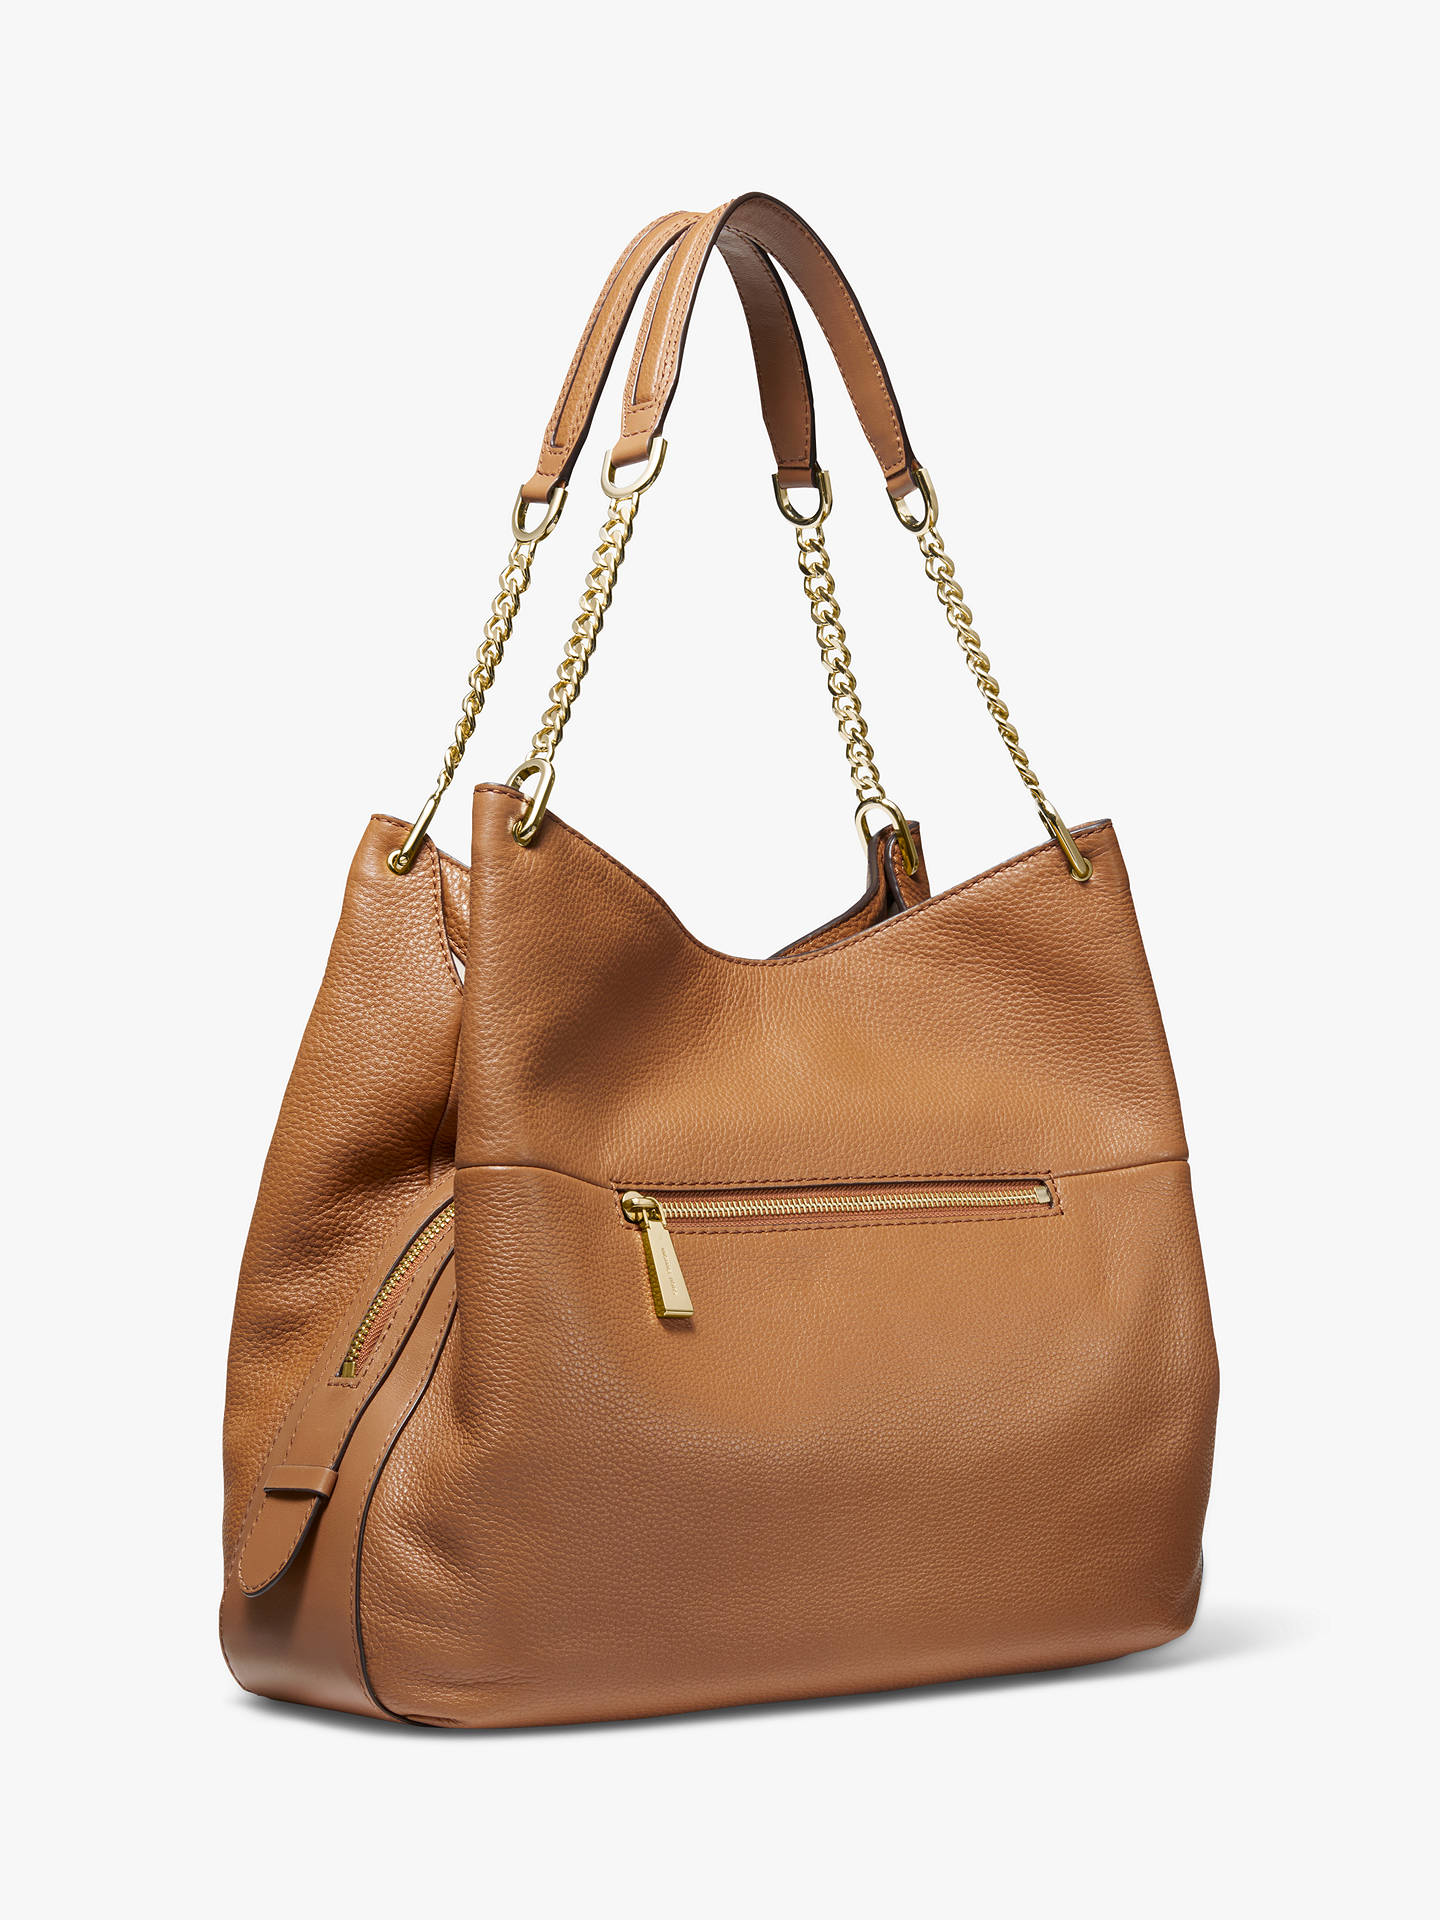 84bfdbb8f35f ... Buy MICHAEL Michael Kors Lillie Large Leather Shoulder Bag, Acorn  Online at johnlewis.com ...